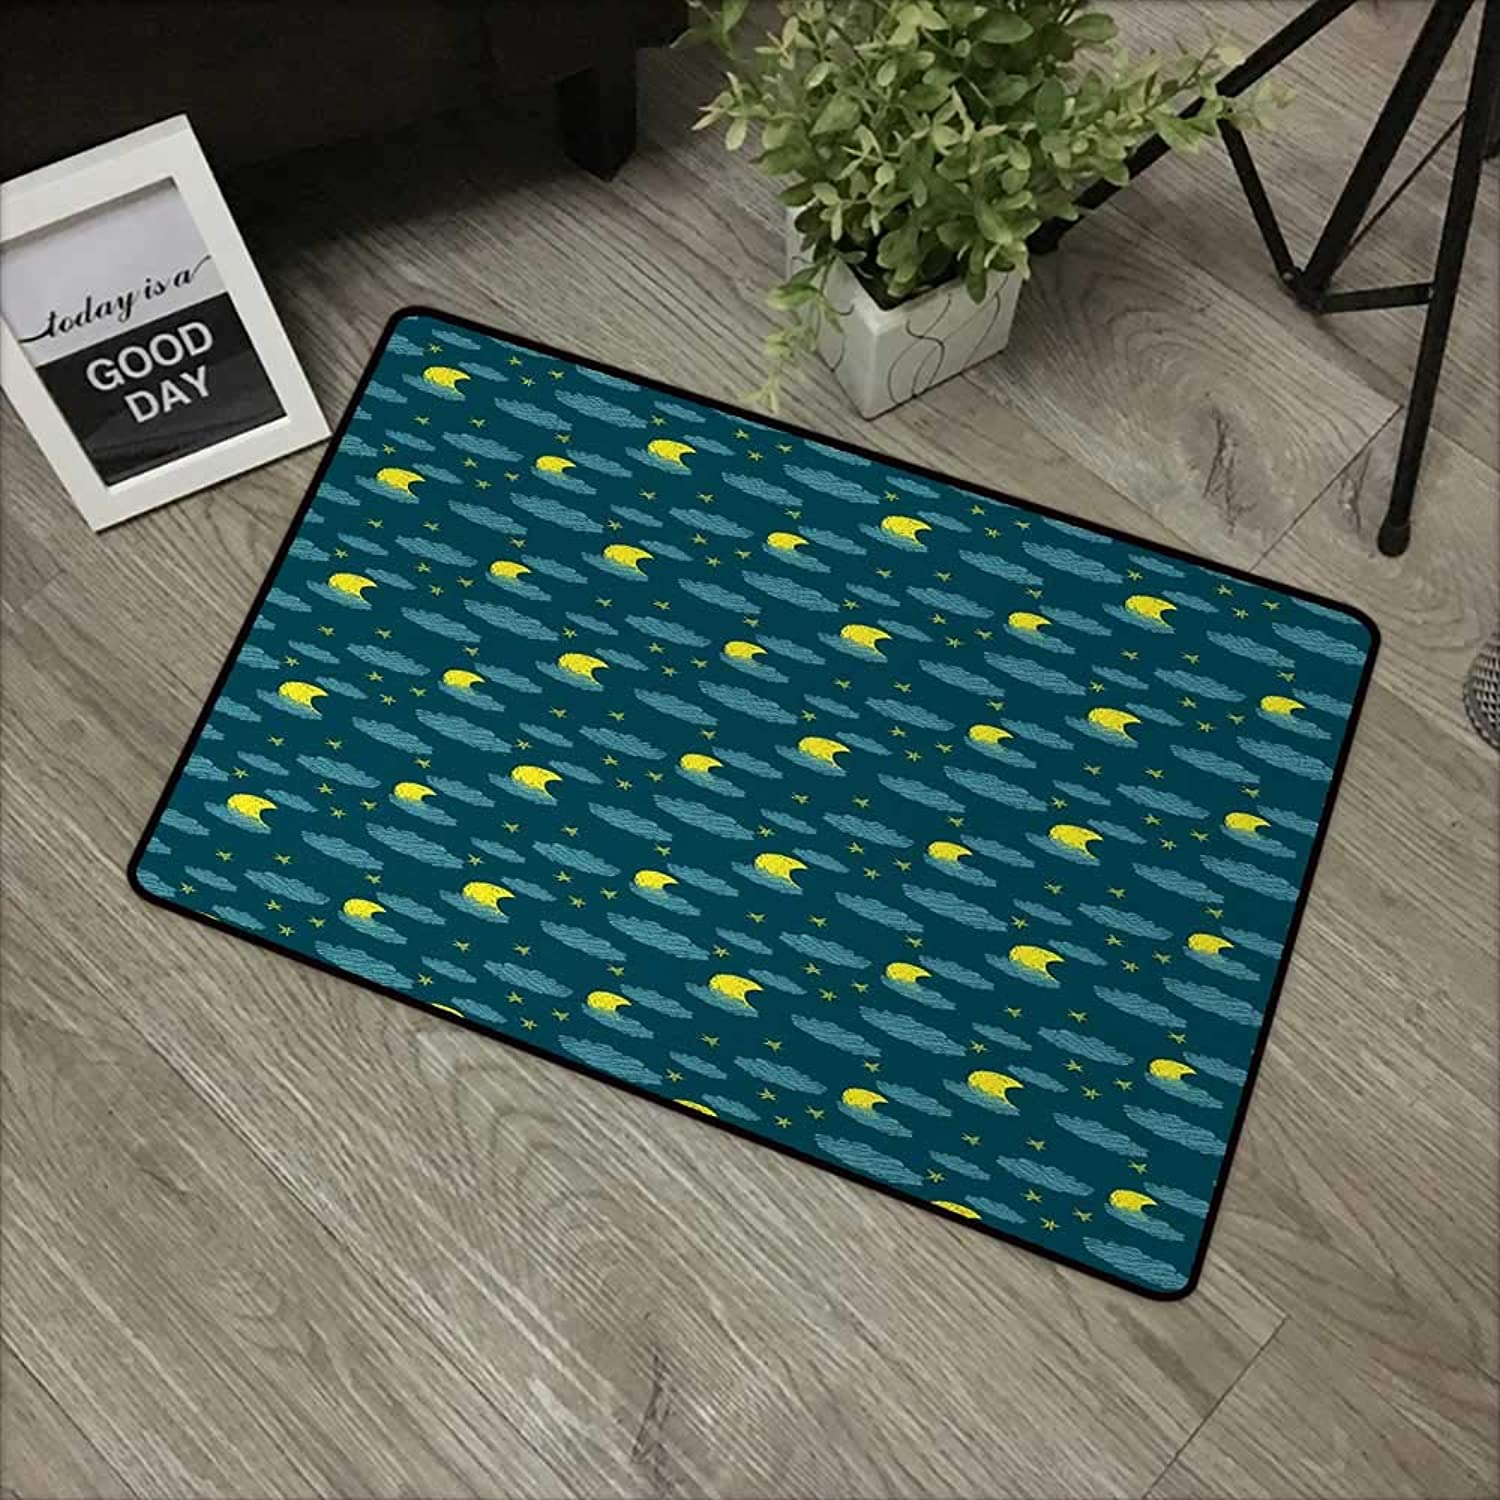 Bathroom mat W35 x L59 INCH Moon,Scribble Starry Sky Pattern with Hand Drawn Style Crescent Moon and Cloud Figures,Teal Yellow Easy to Clean, no Deformation, no Fading Non-Slip Door Mat Carpet